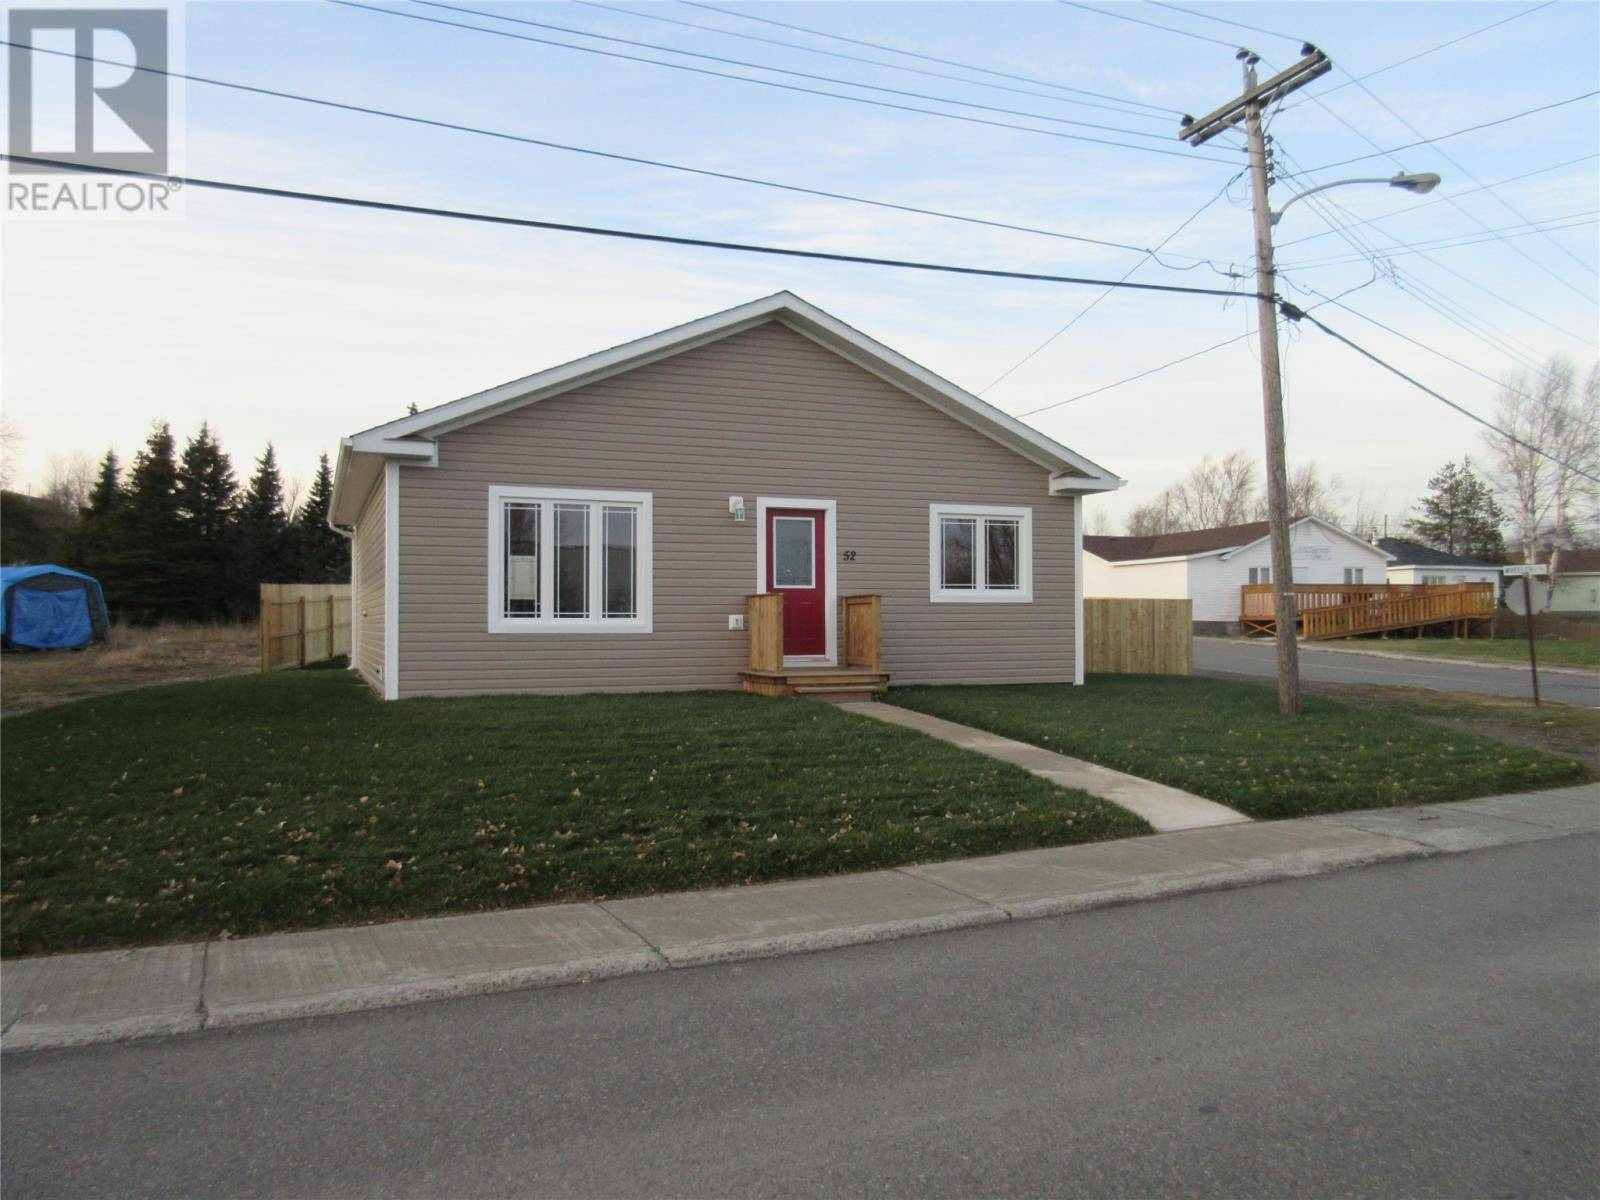 House for sale at 52 Main St Grand Falls-windsor Newfoundland - MLS: 1207354